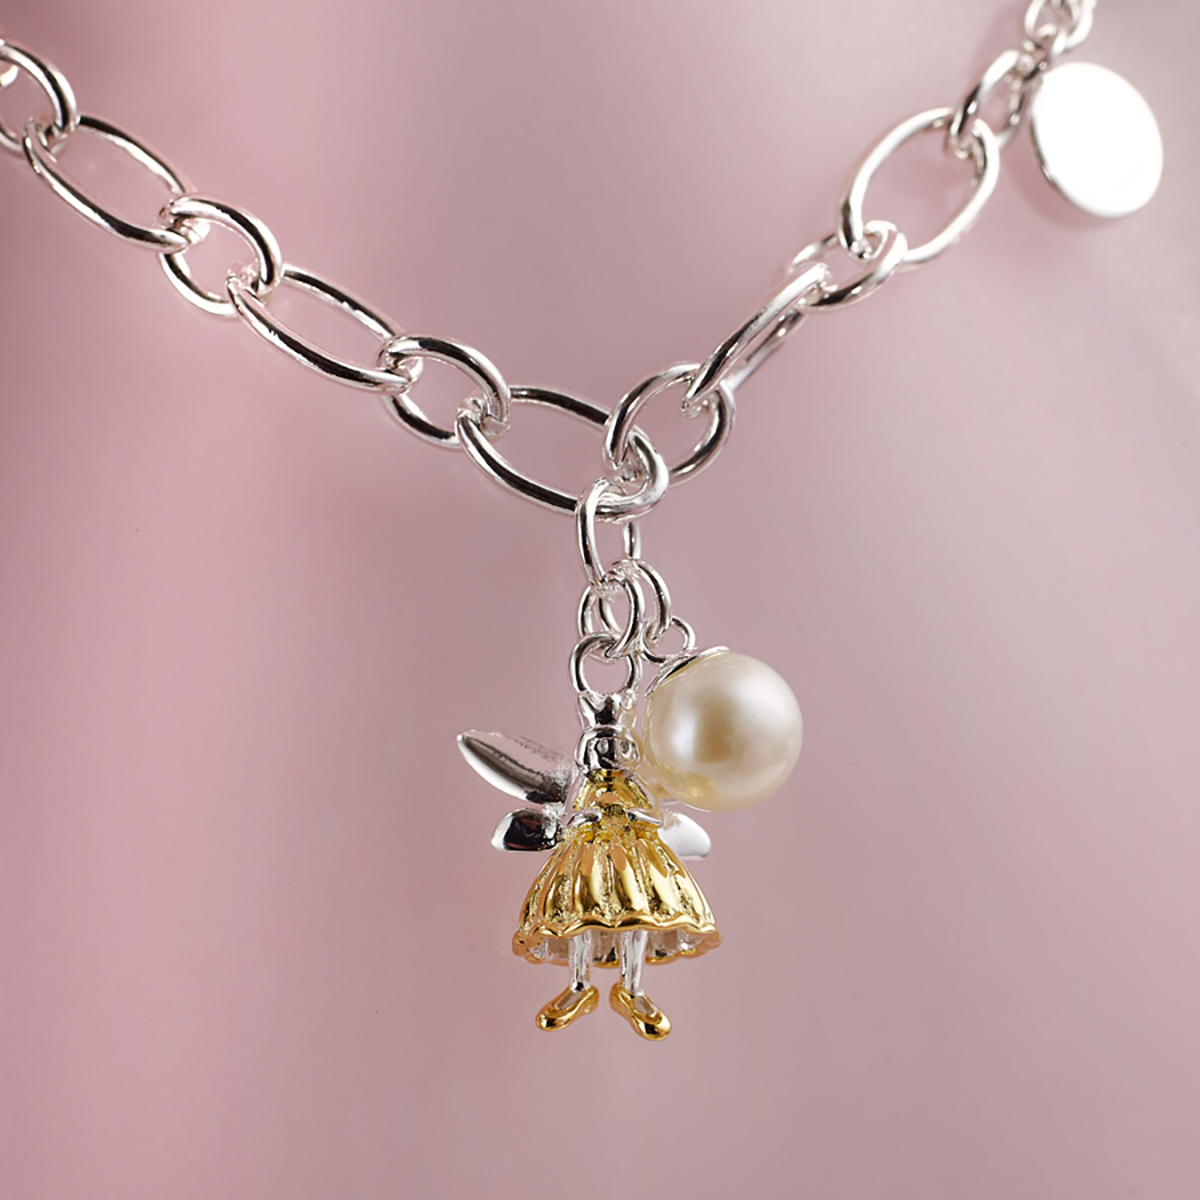 Merrigold the Gold Fairy Wish Bracelet - LAST 3 AVAILABLE